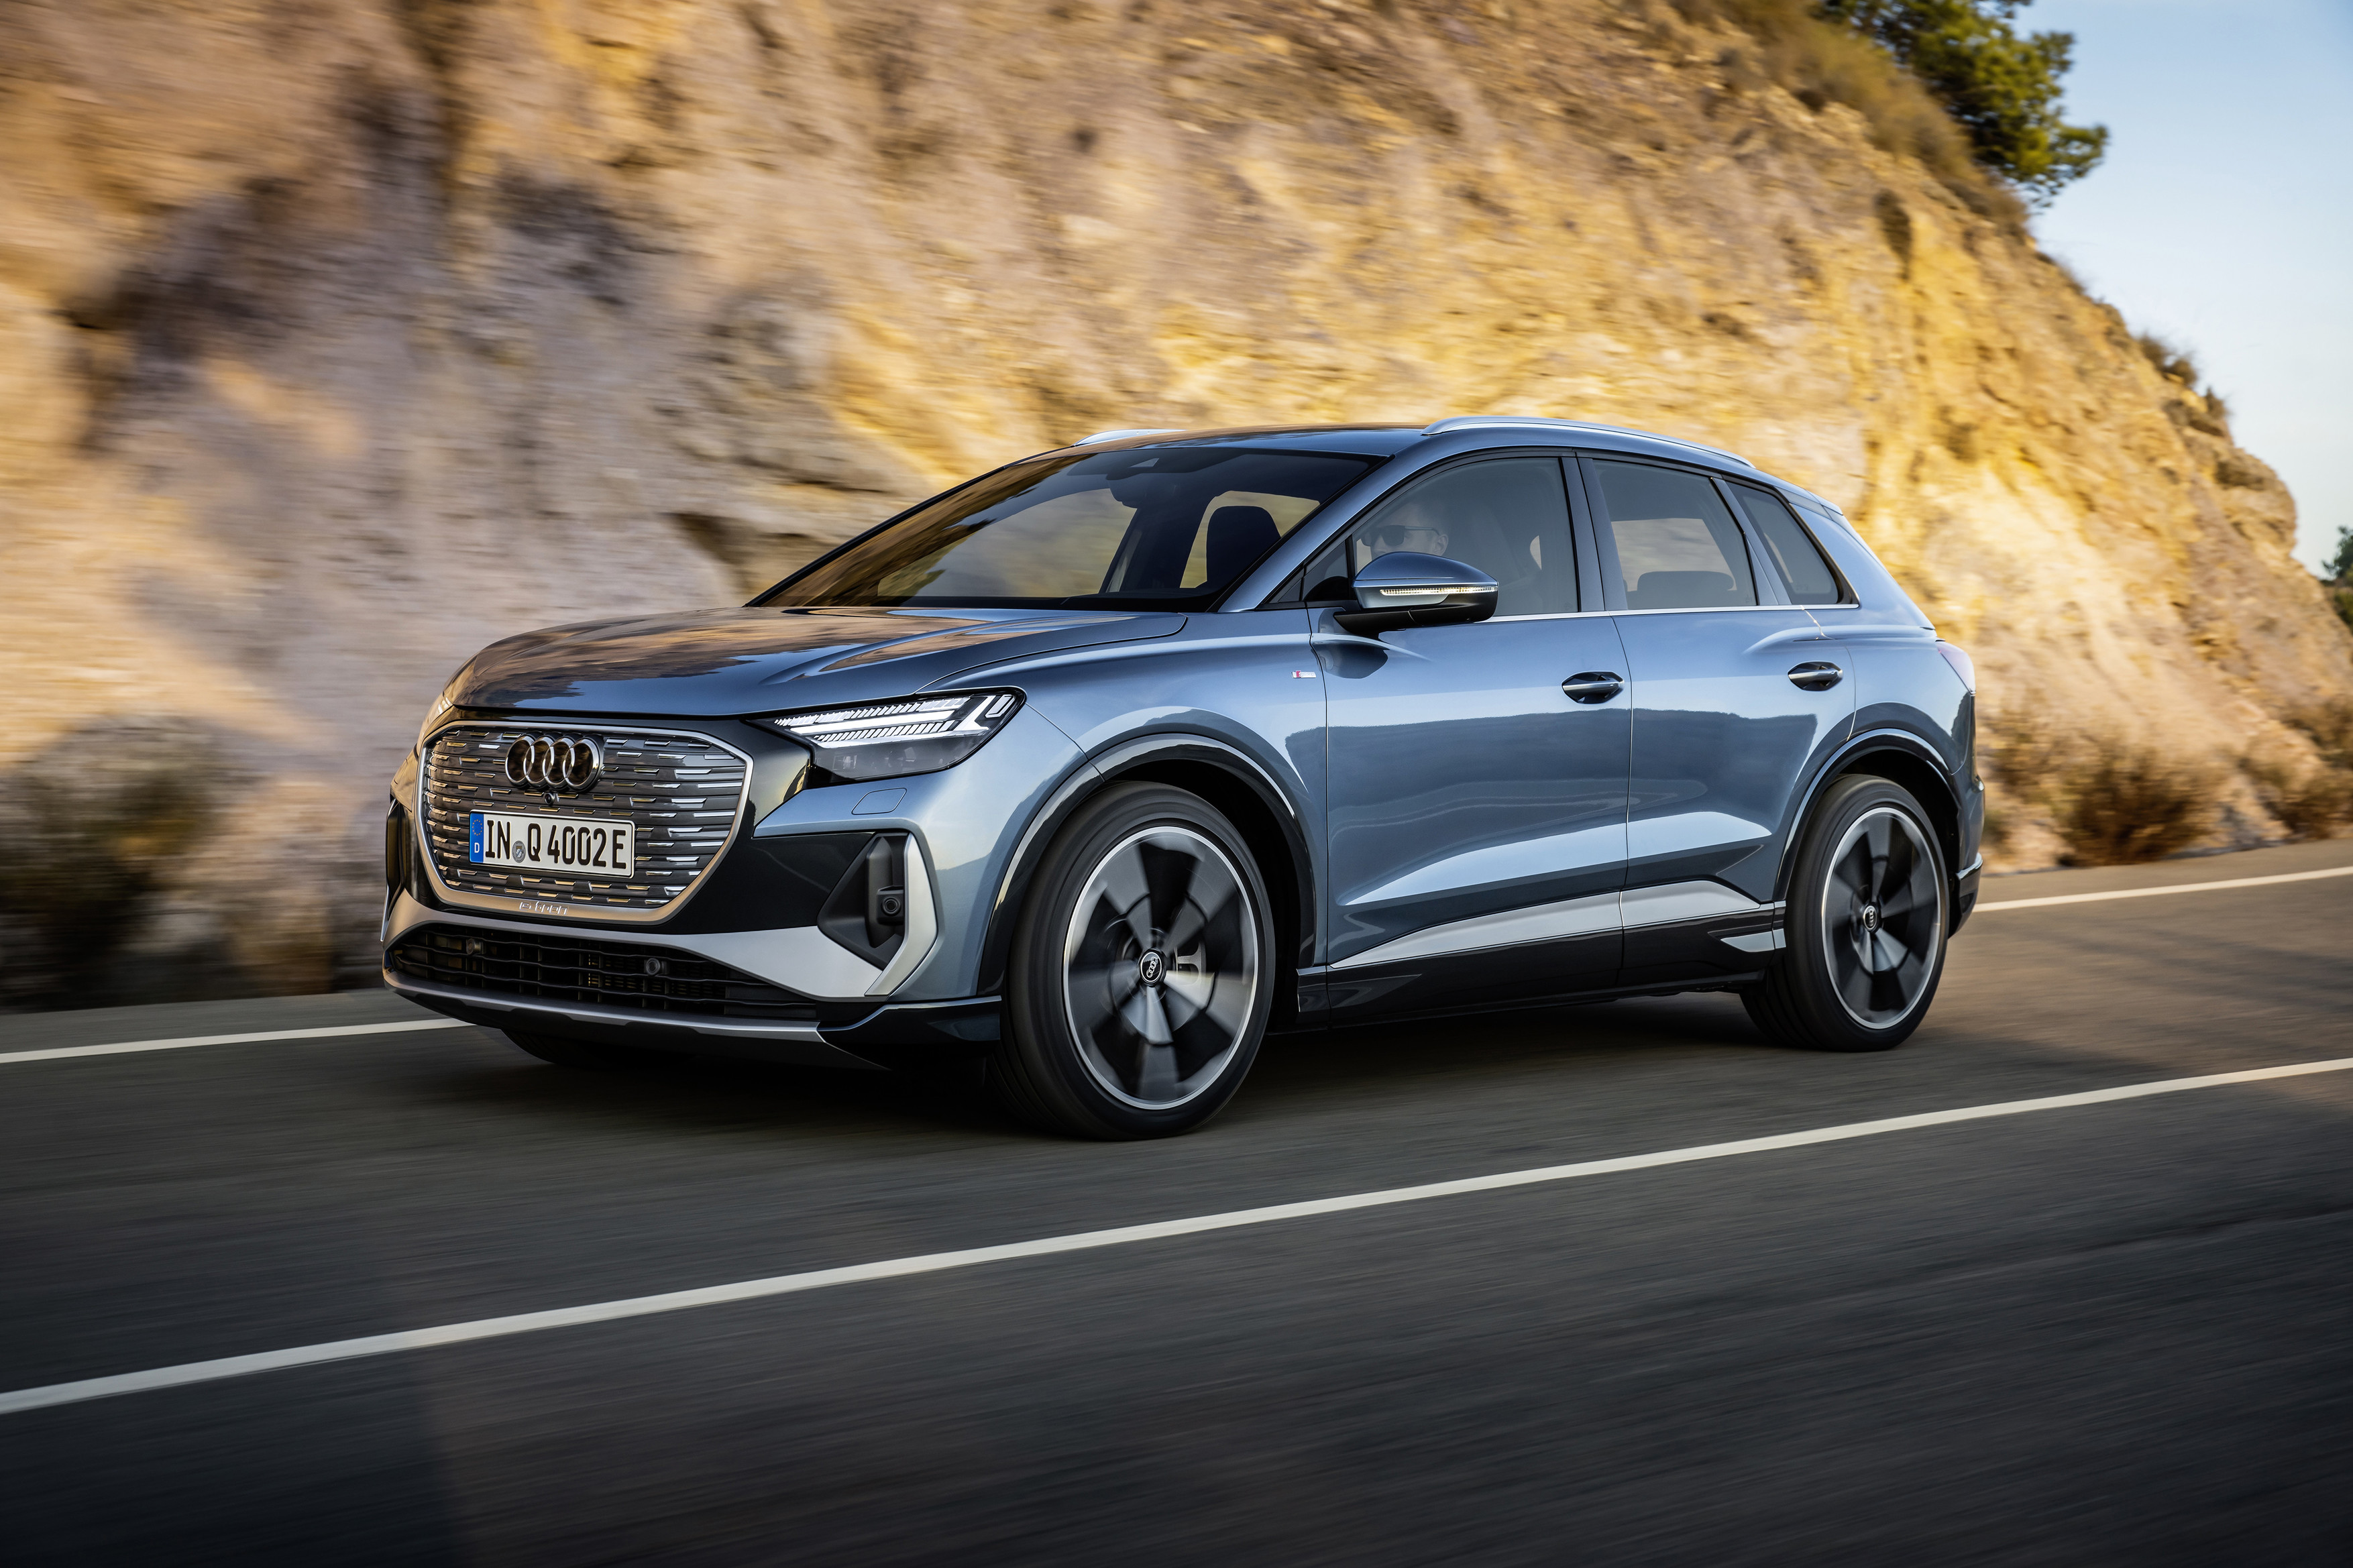 The Q4 e-tron and its Sportback sibling join Audi's European EV lineup... image